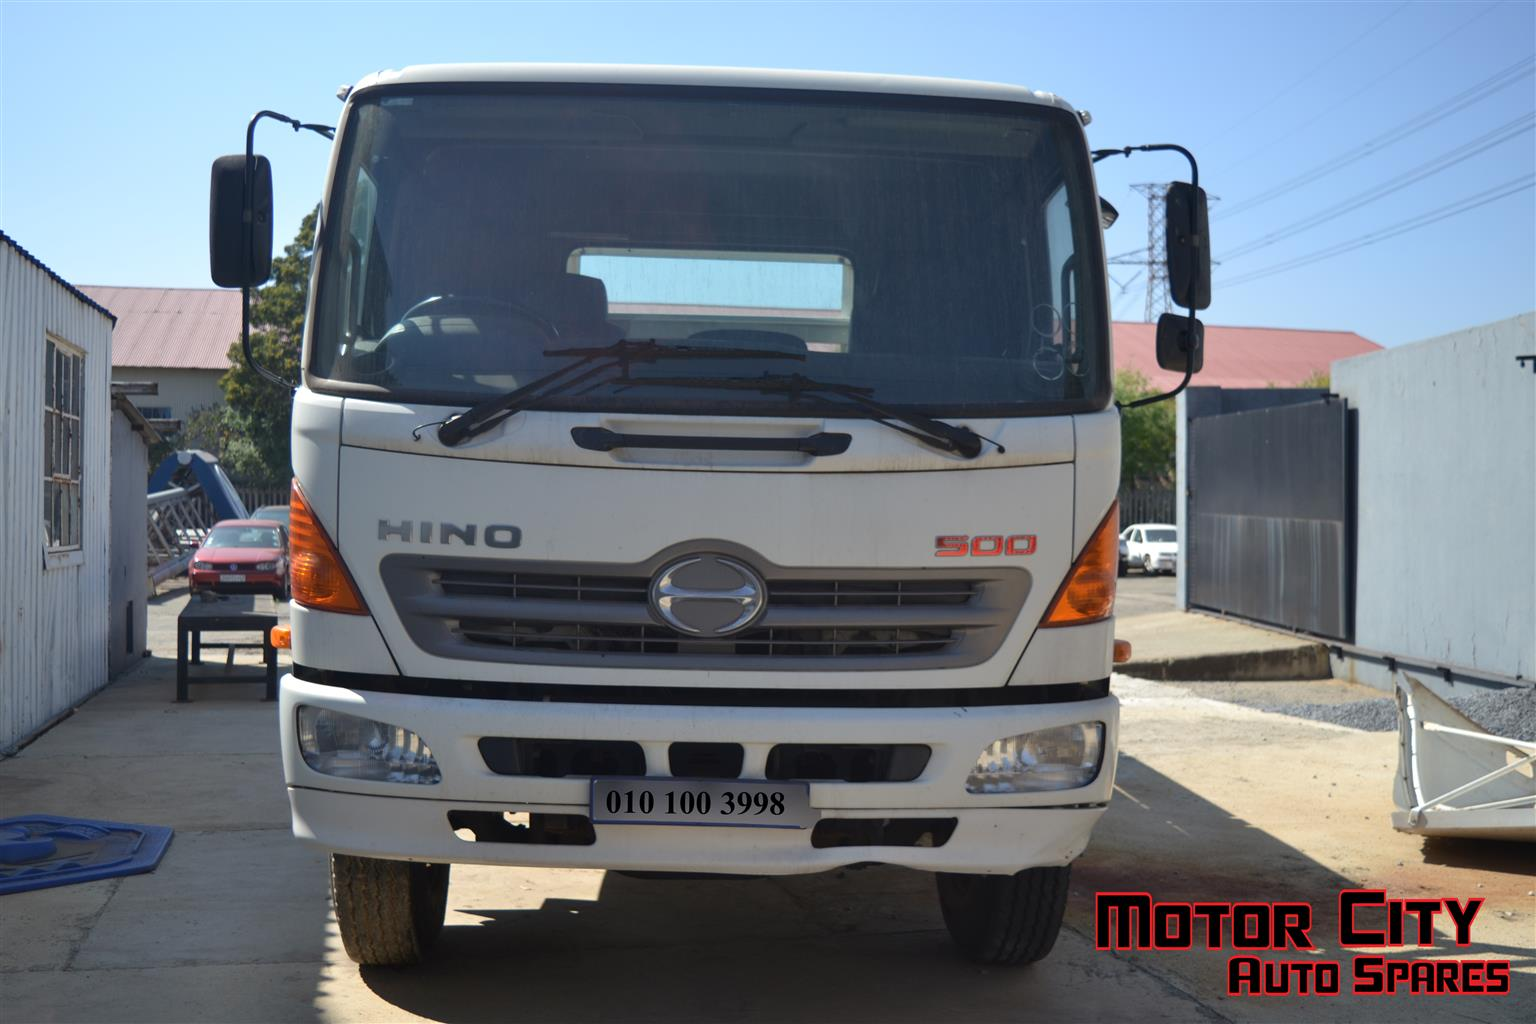 TOYOTA HINO 500 1626 (LWB) | NOW STRIPPING FOR SPARES